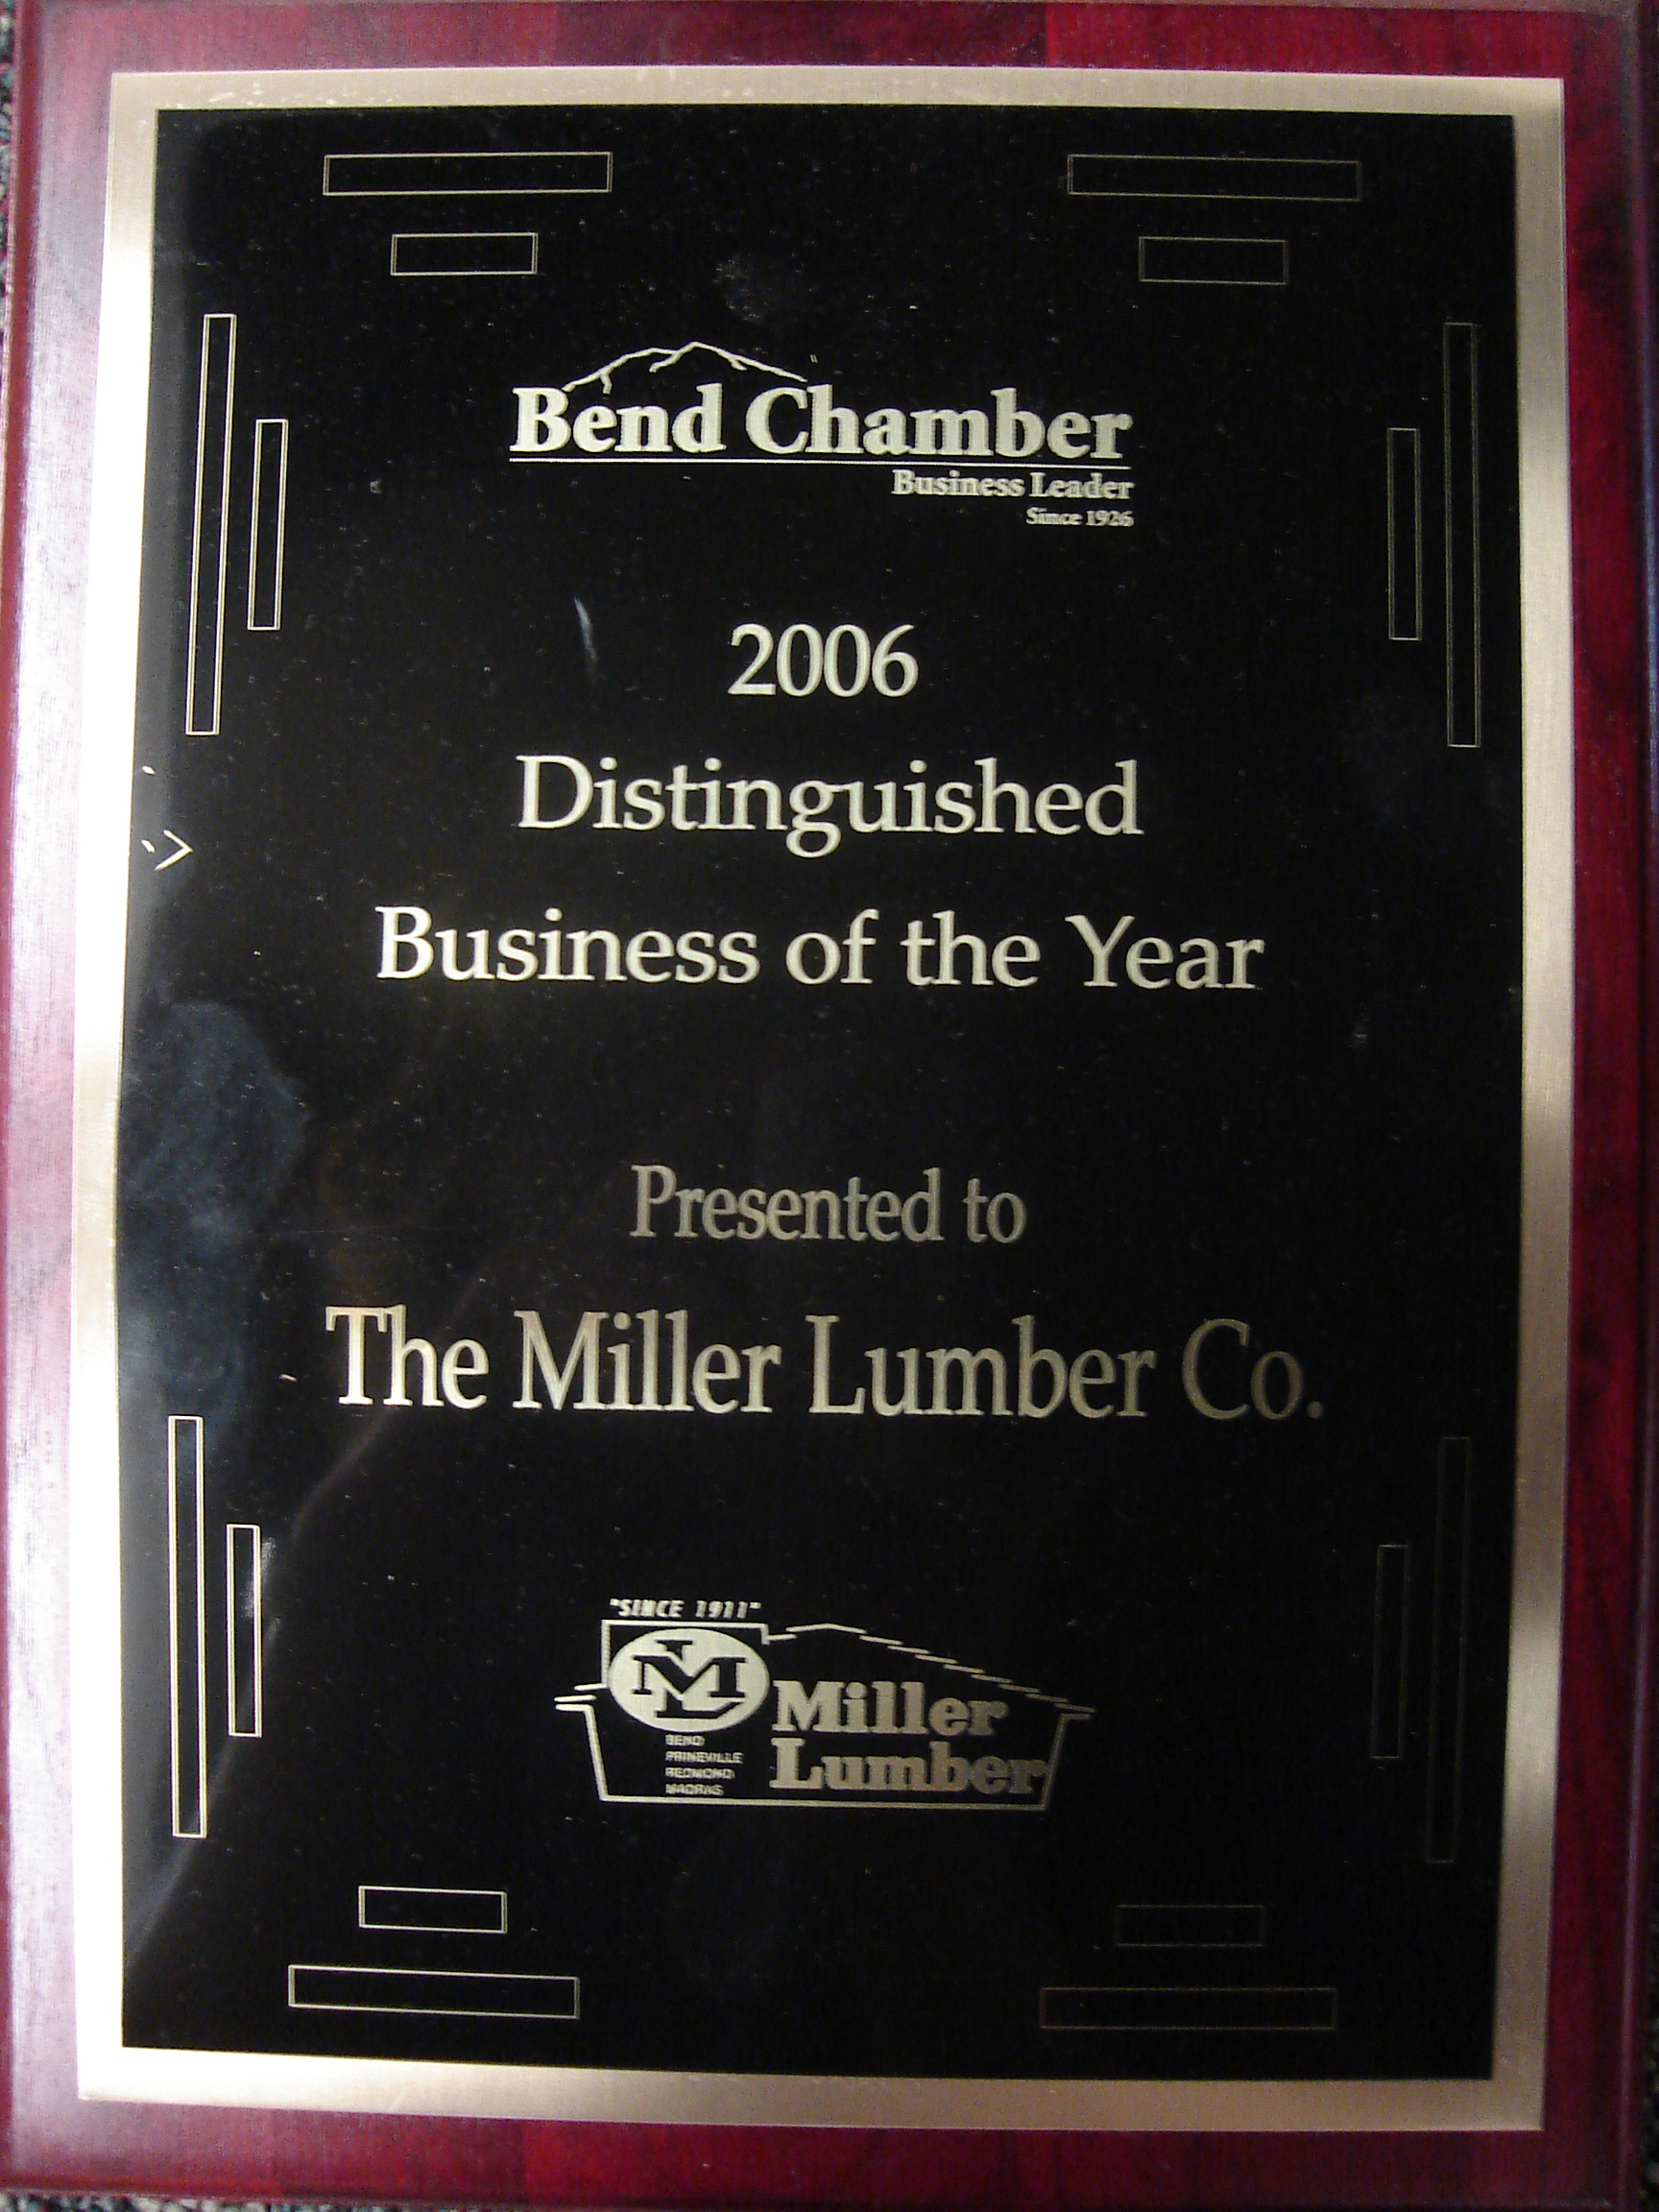 Miller Lumber's endless involvement in the Central Oregon community largely contributed to its being awarded the Bend Chamber's Distinguished Business of the Year award.